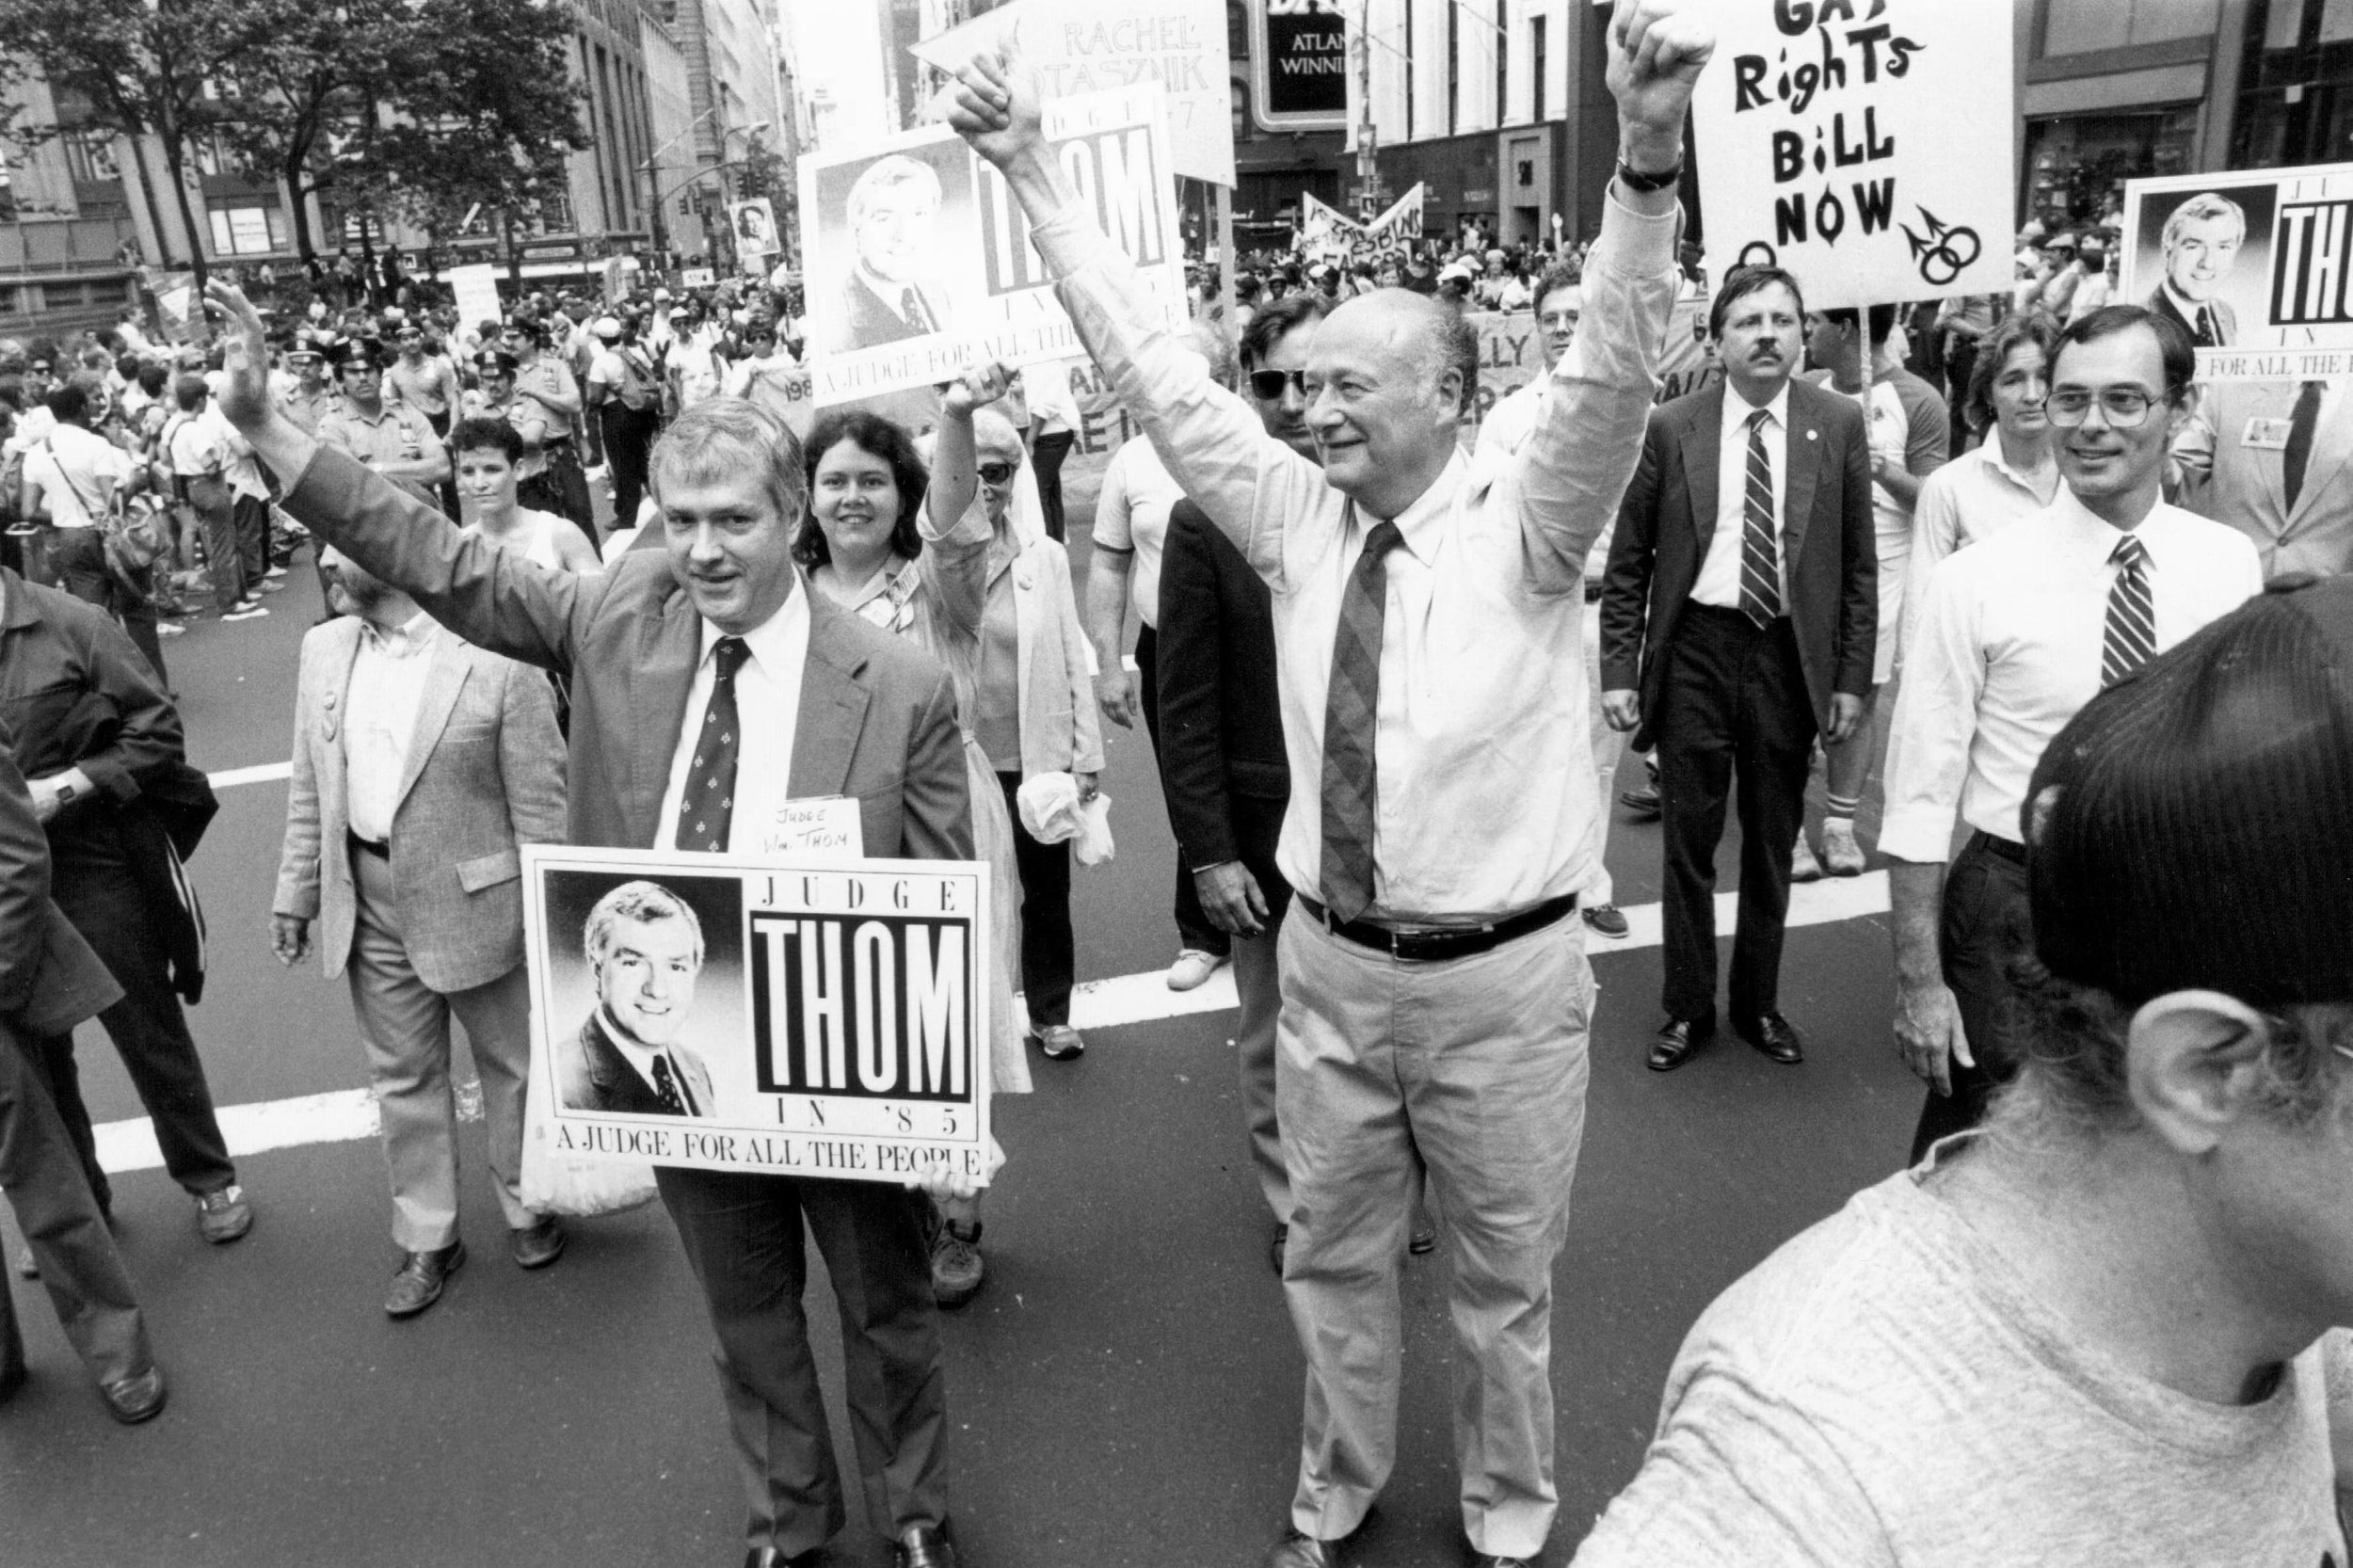 Mayor Edward Koch marched in the 1985 Gay Pride parade with Judge Willliam Thom, New York's first openly gay judge. June 30, 1985. Photographer: Holland Wemple. Edward I. Koch Collection, NYC Municipal Archives.